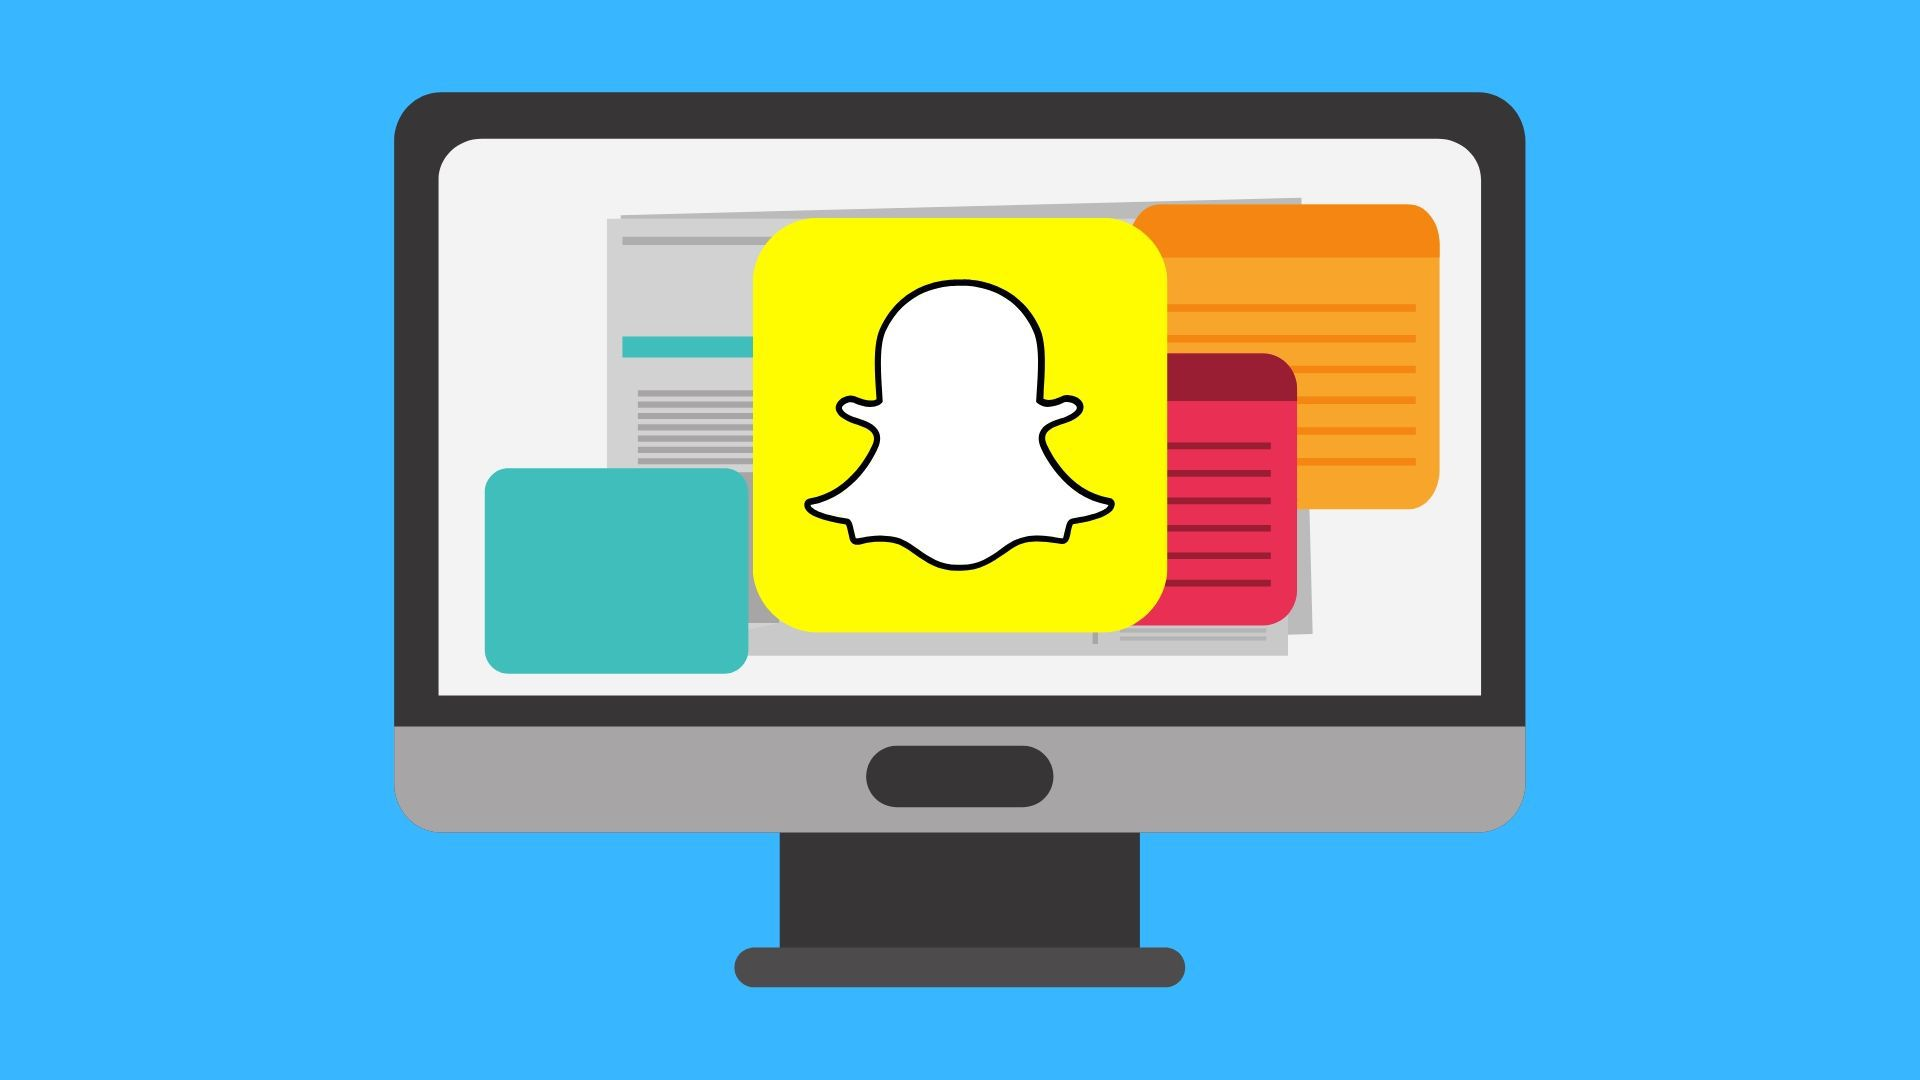 How to Use Snapchat on PC